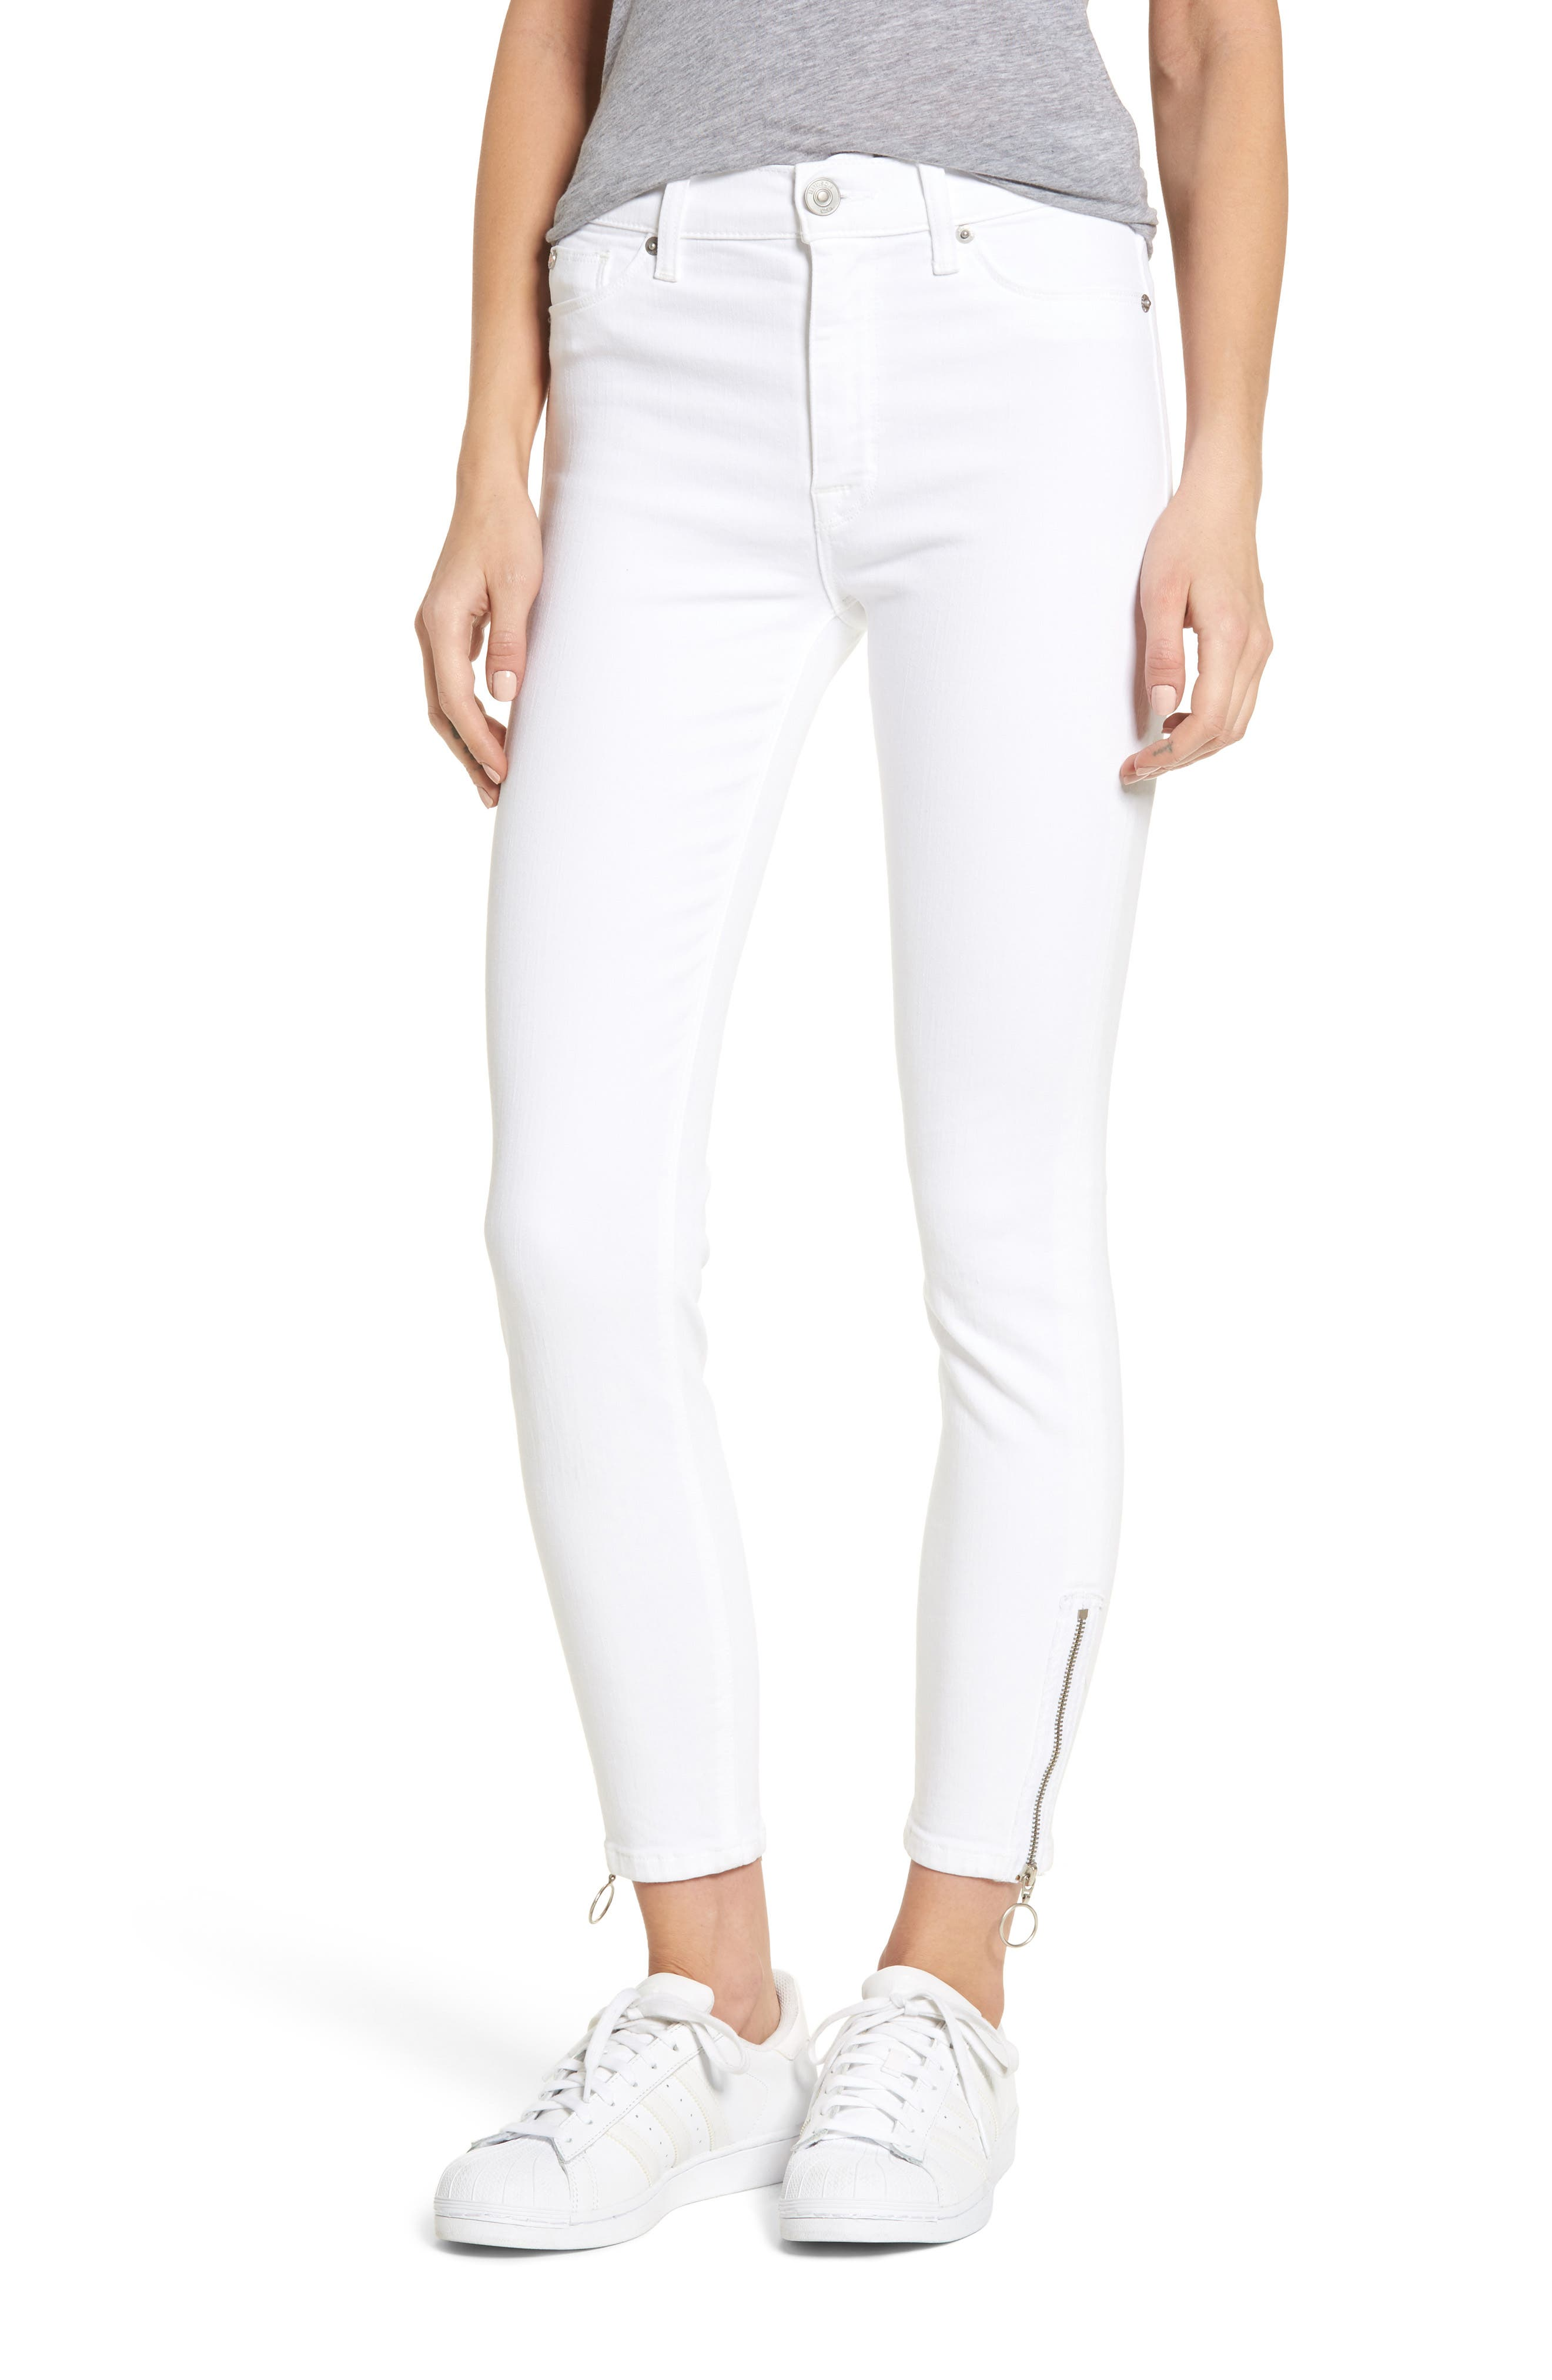 Barbara High Waist Ankle Skinny Jeans,                             Main thumbnail 1, color,                             Optical White